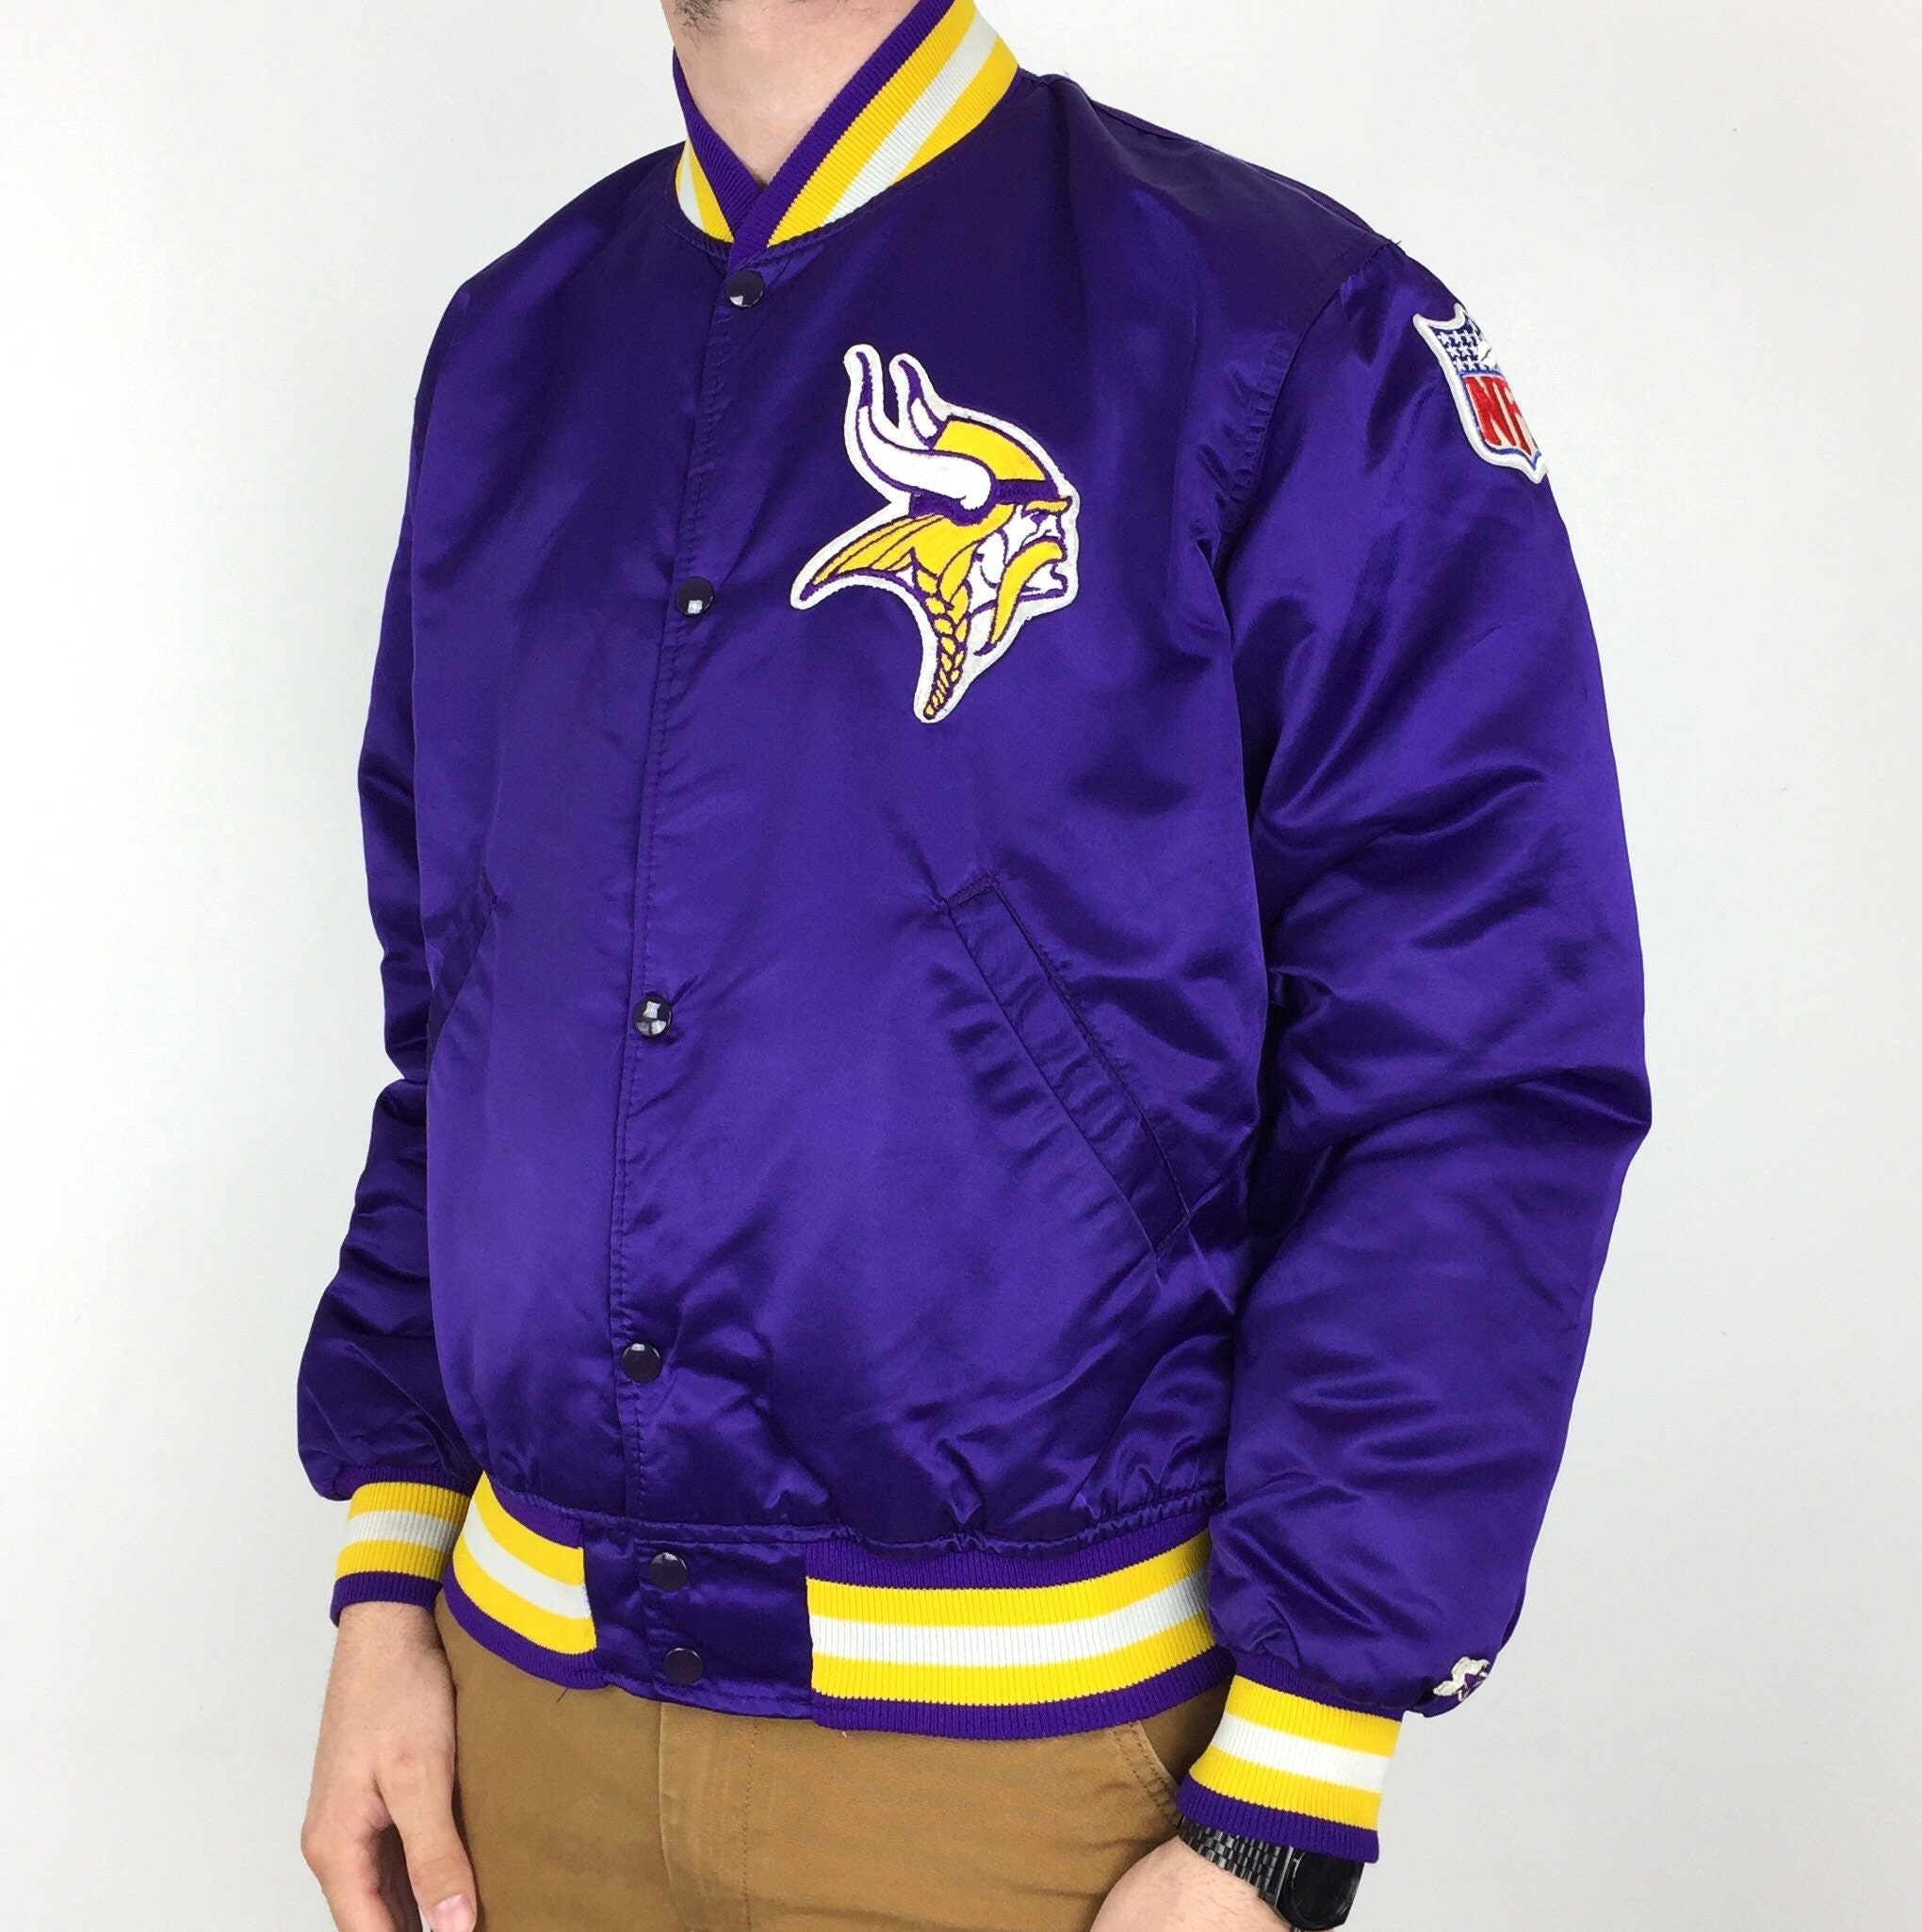 official photos 3db6d 53455 Rare Vintage 80s Starter NFL Minnesota Vikings Made in USA ...